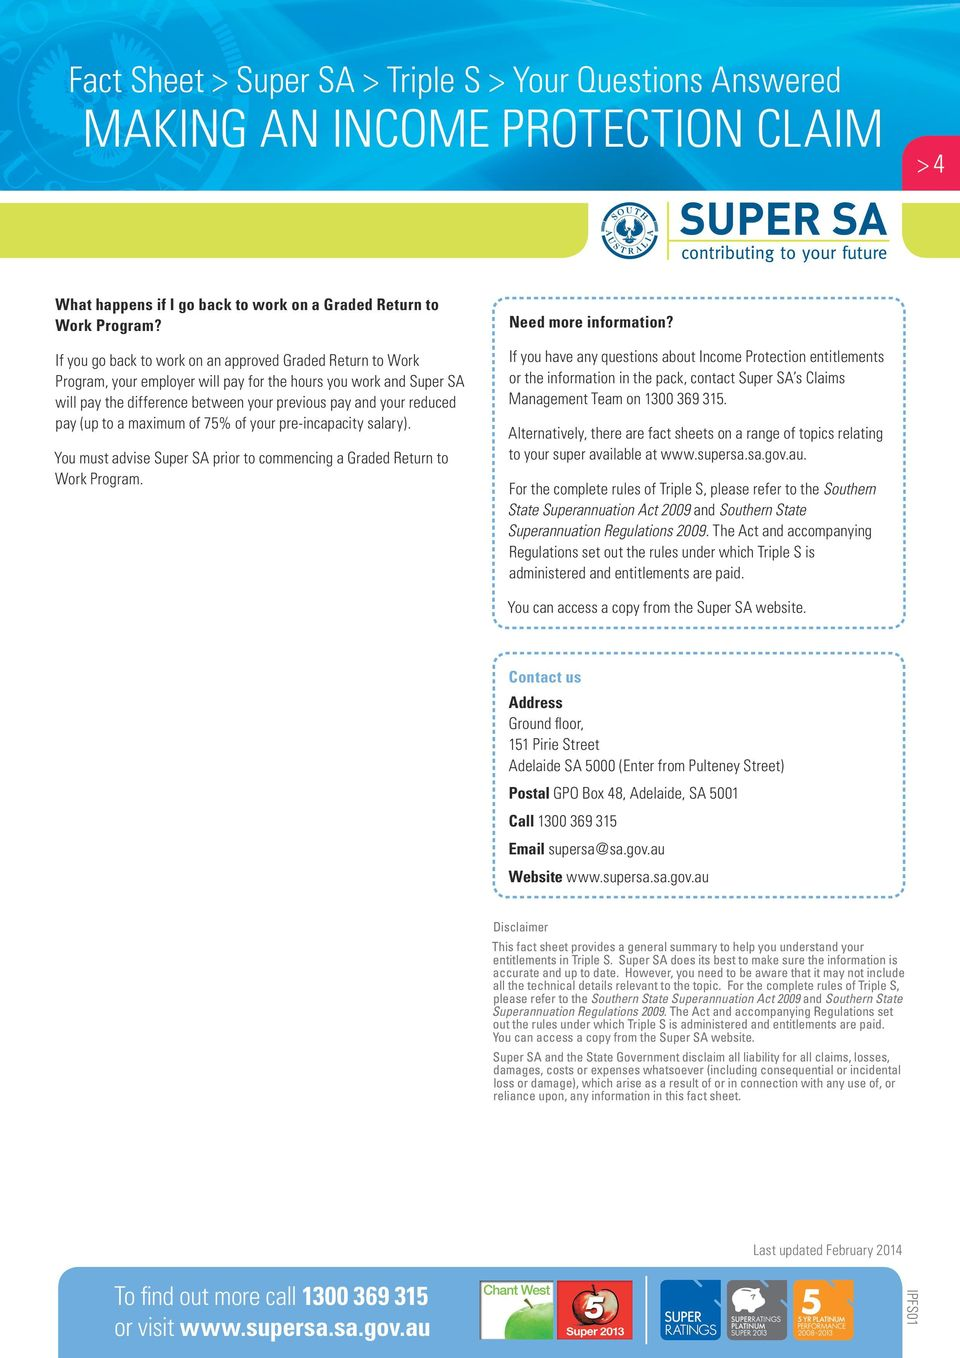 (up to a maximum of 75% of your pre-incapacity salary). You must advise Super SA prior to commencing a Graded Return to Work Program. Need more information?